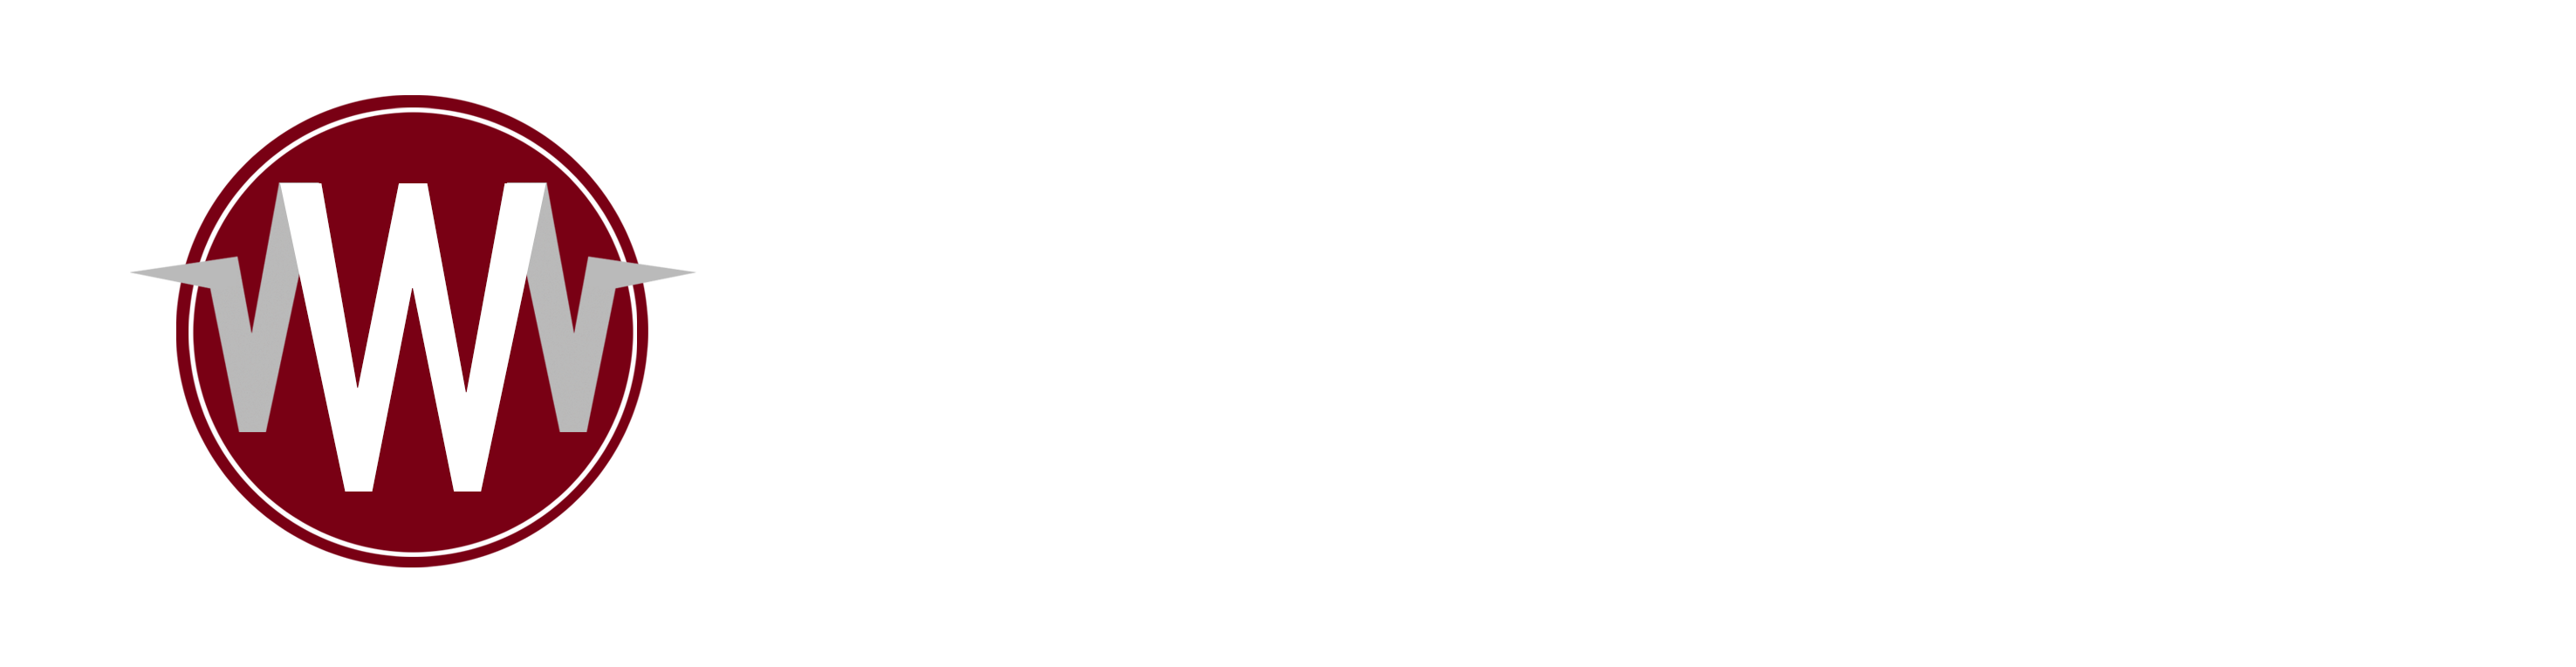 RADIO LEFT WING